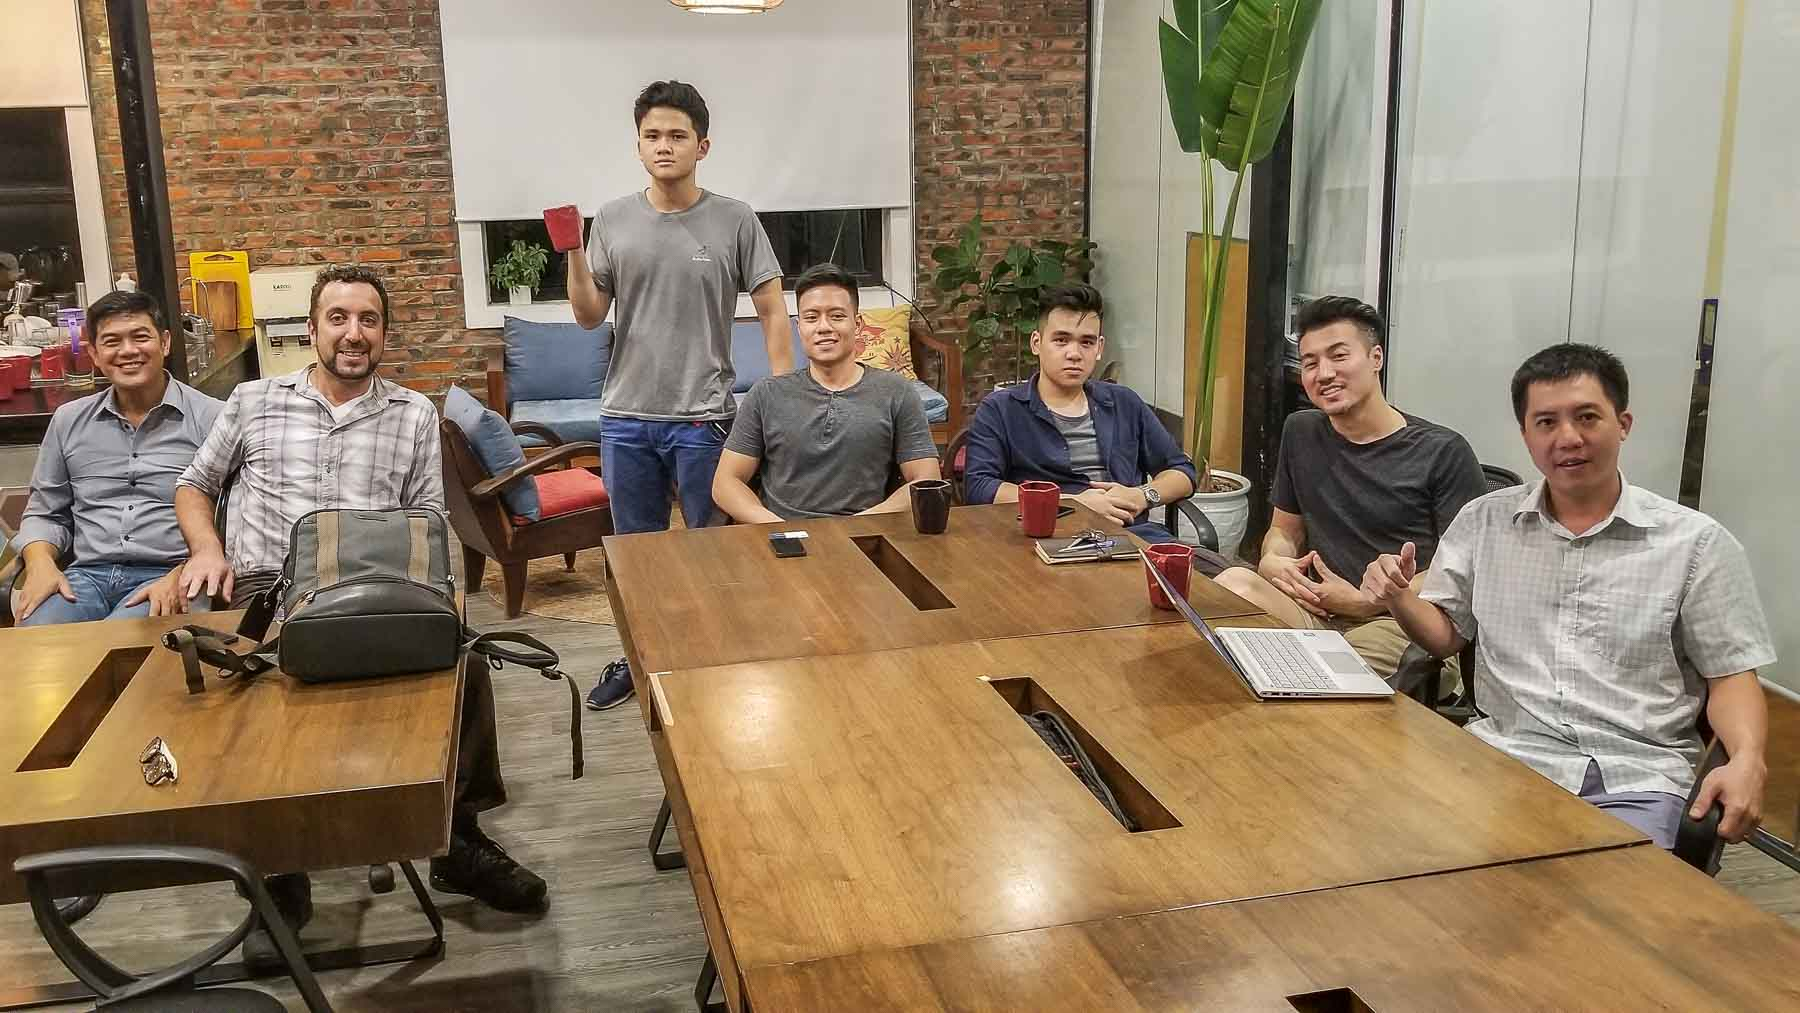 Globetrotting Entrepreneur and ESC Founder Michael Scott Novilla and the Entrepreneur Social Club enjoys Scientists Sushi and Splits in Hanoi Vietnam.